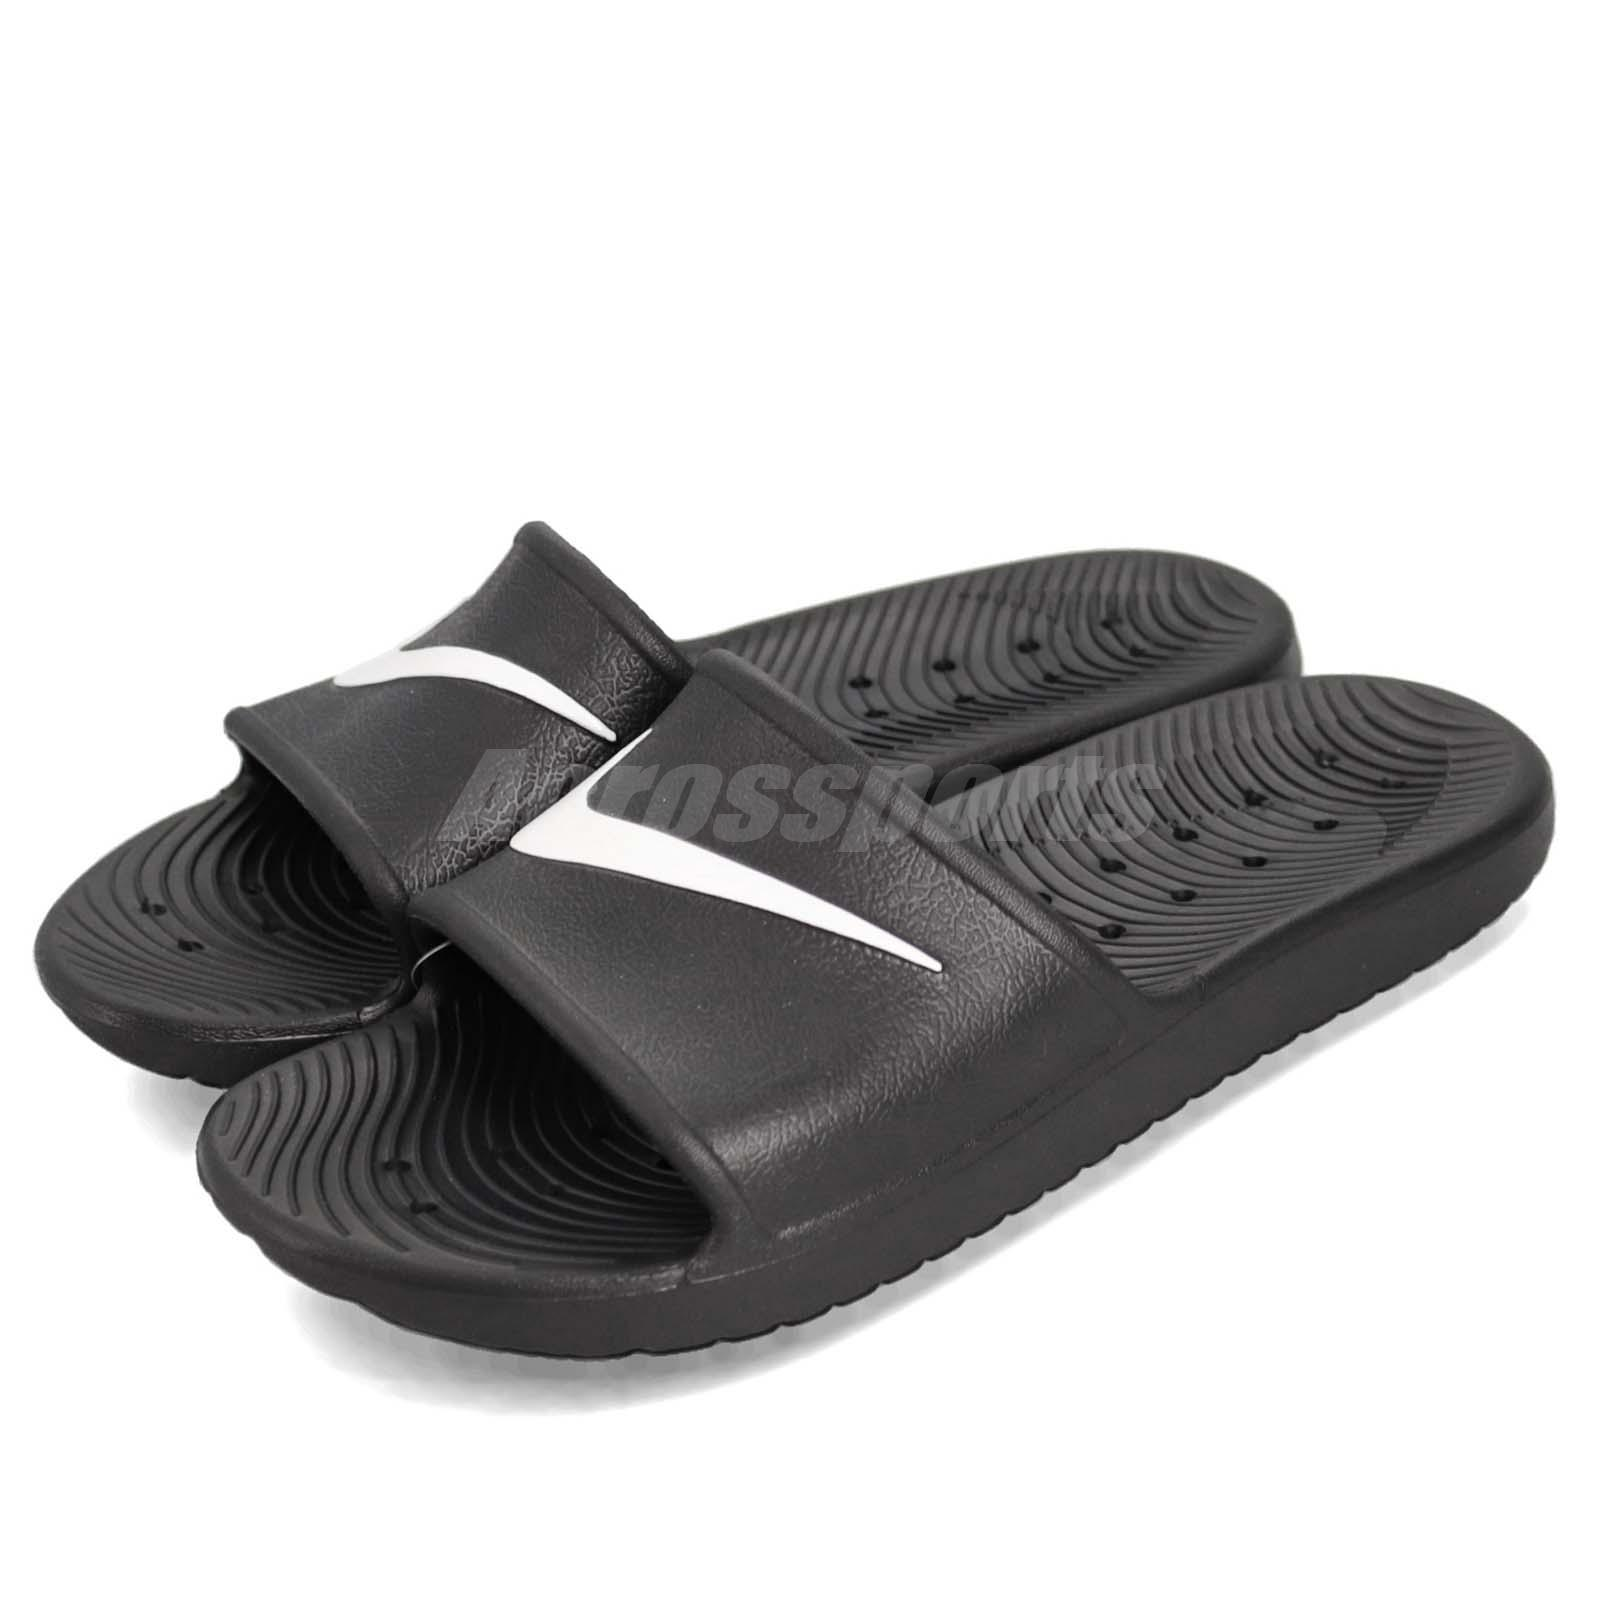 new arrival b1a00 650c7 Details about Nike Kawa Shower Black White Men Sports Sandals Slides  Slippers 832528-001